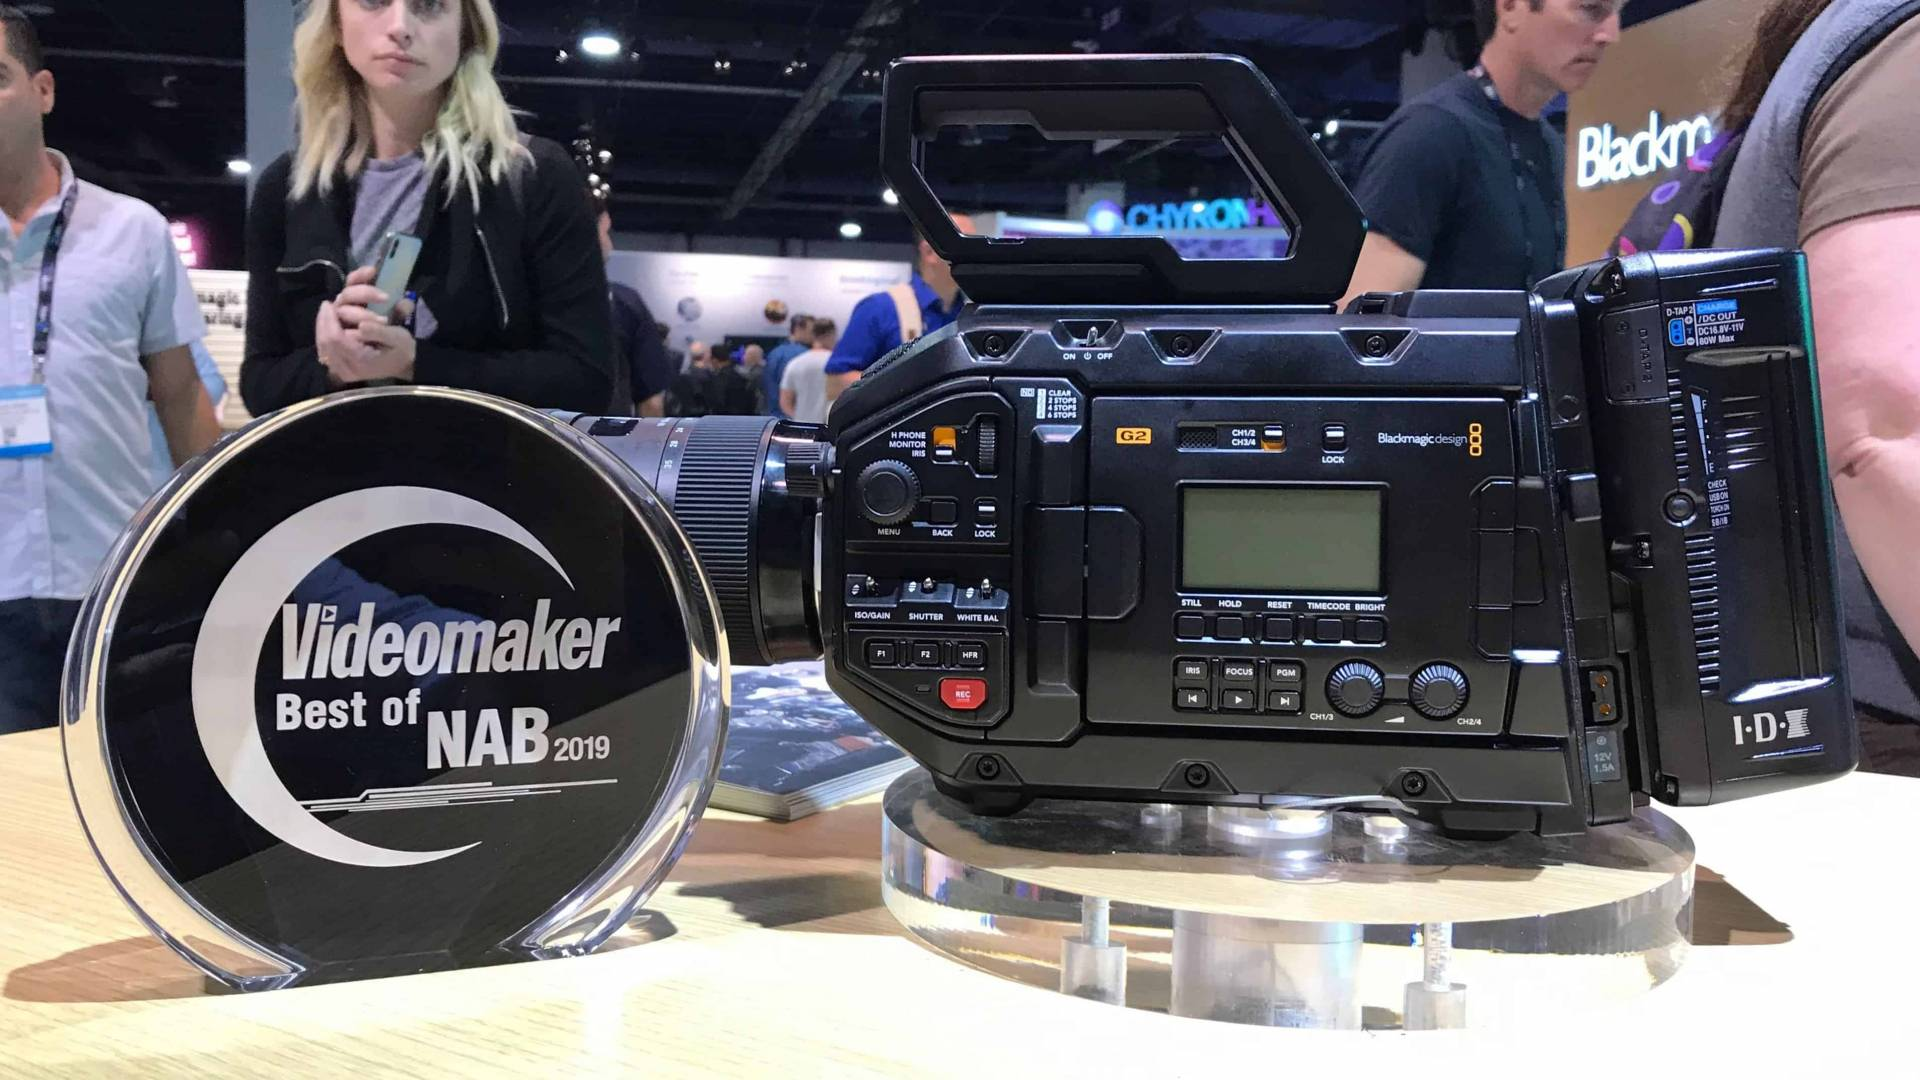 Blackmagic URSA Mini 4.6K G2 with award